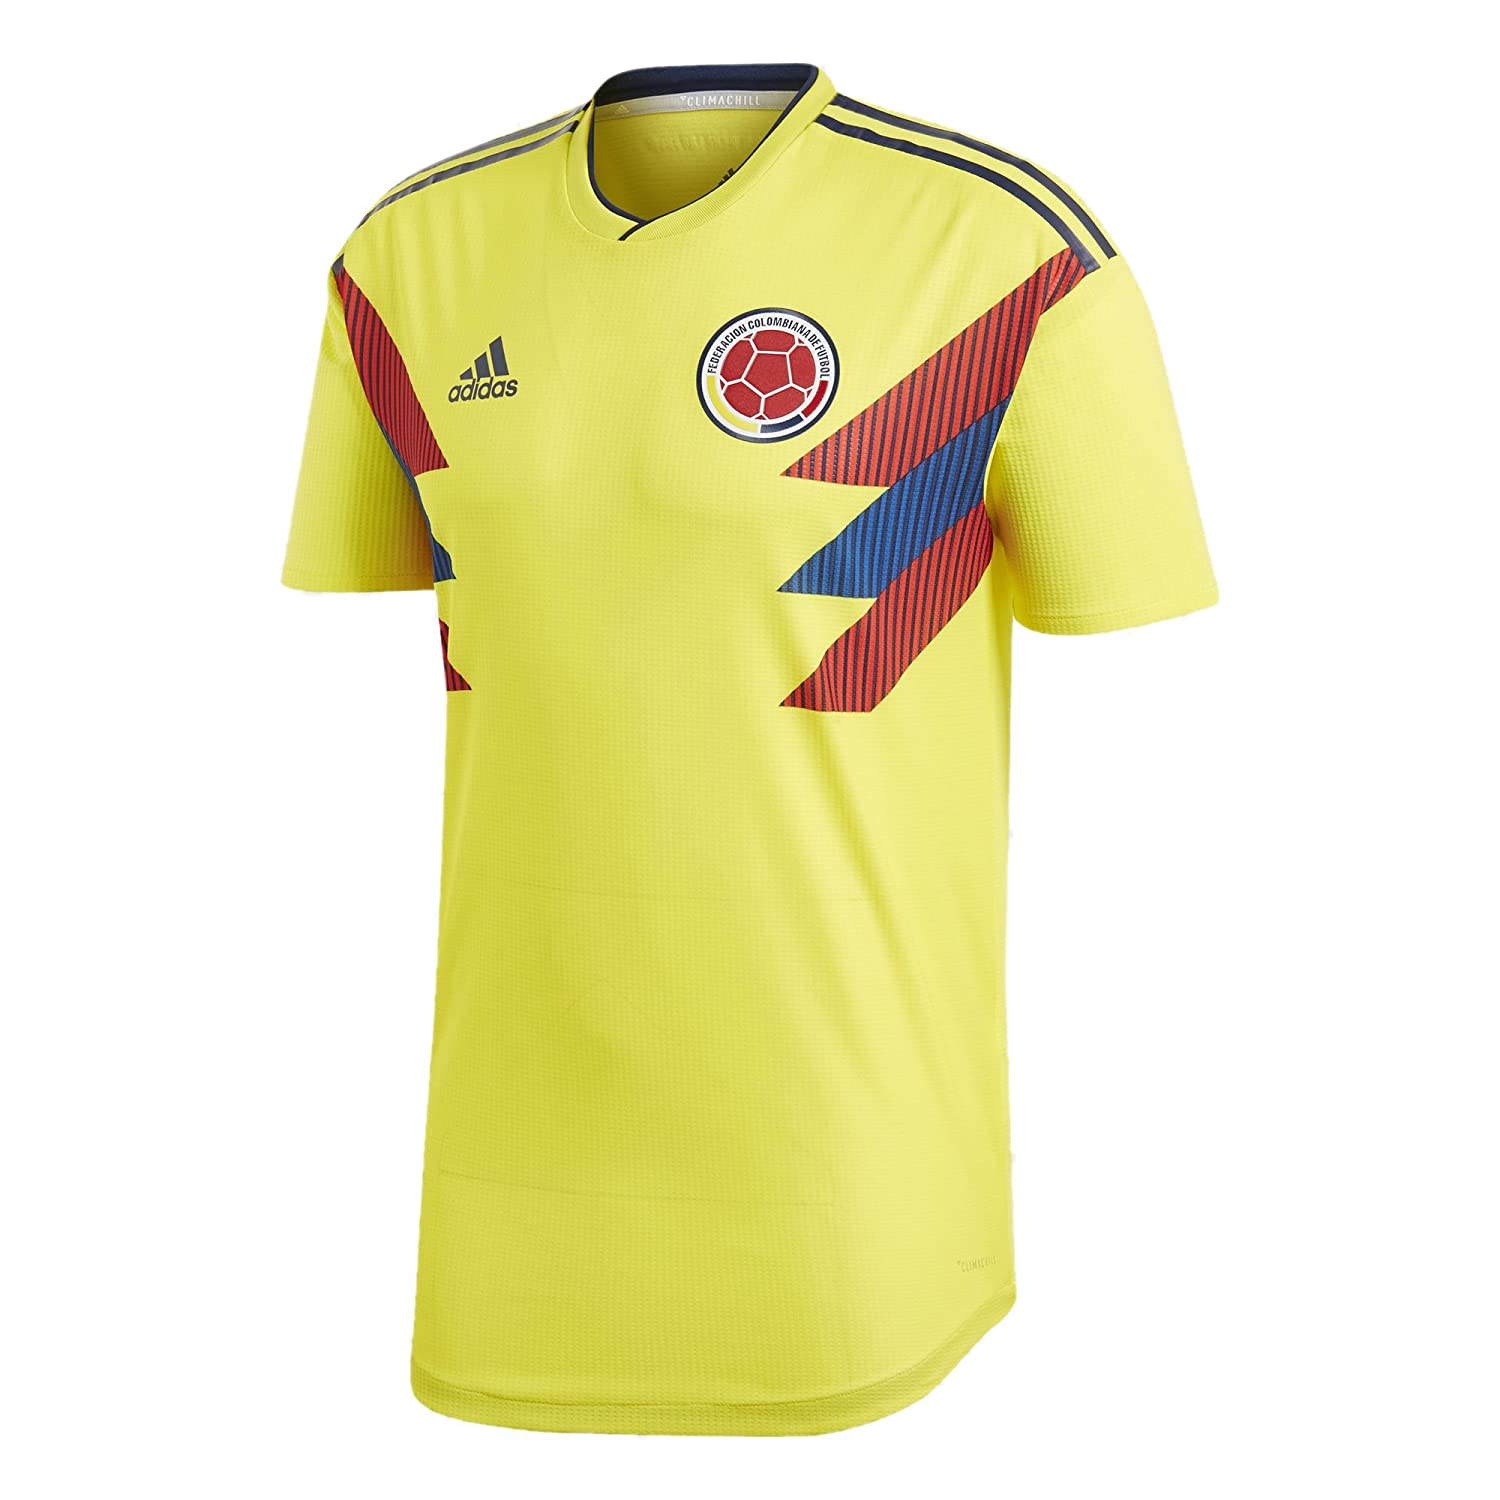 adidas Colombia 1990 World Cup Jersey Yellow | adidas US